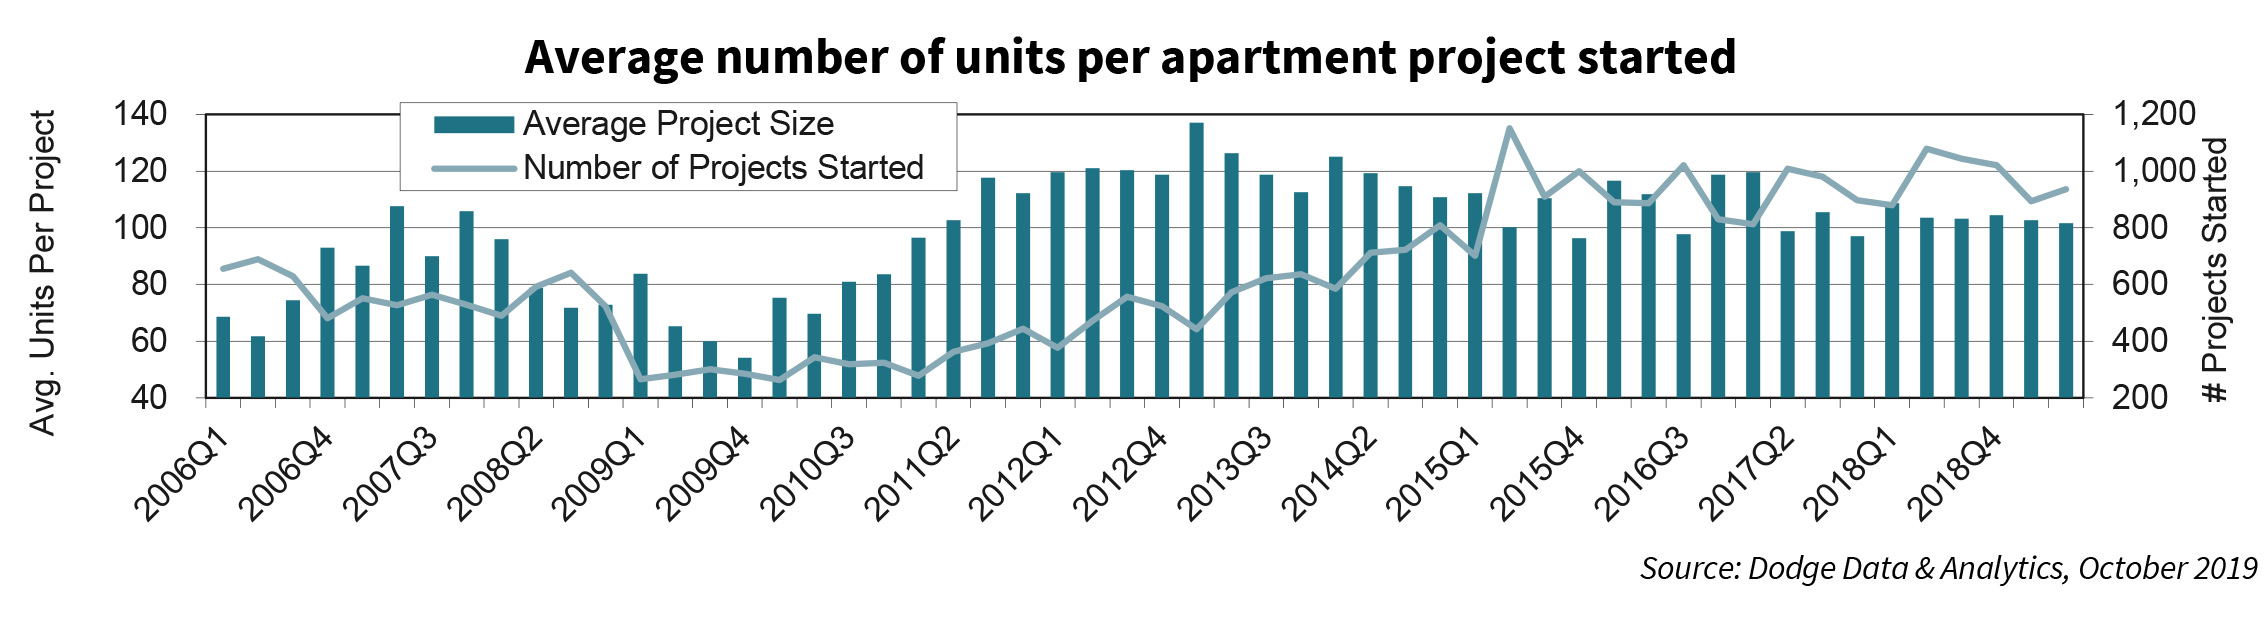 Average number of units per apartment project started